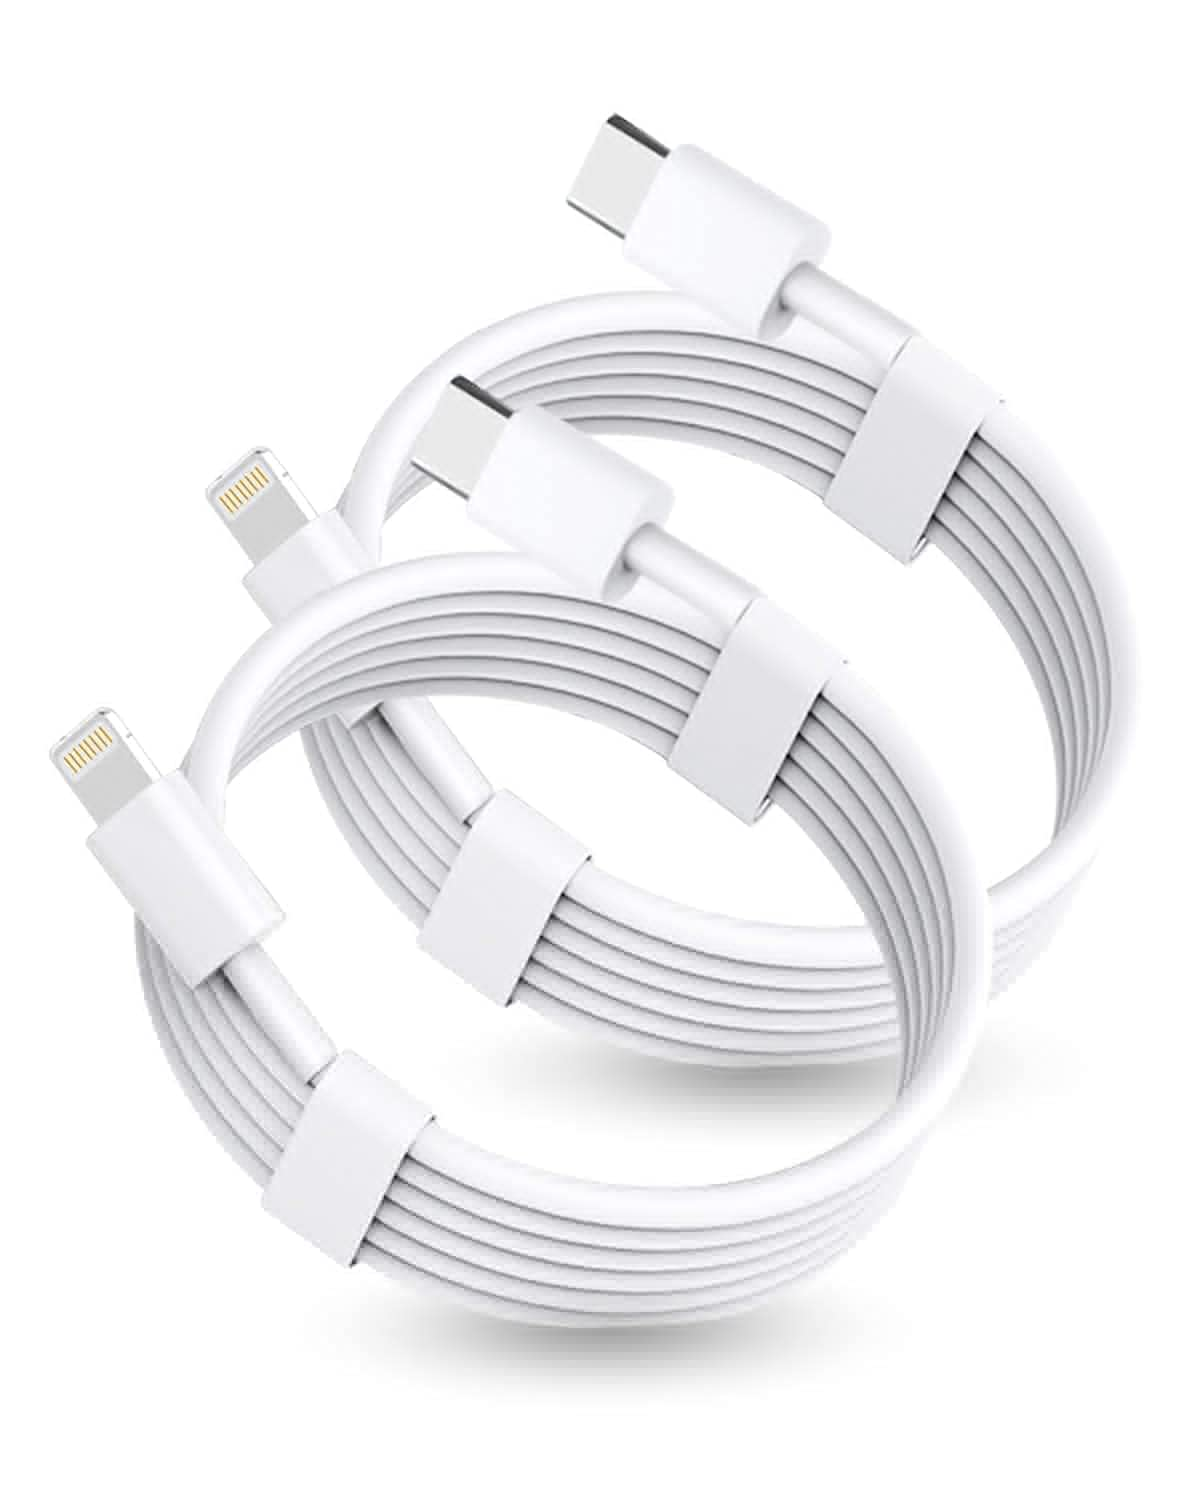 2Pack USB C iPhone 12 Charger Cable 6ft【Apple MFi Certified】,USB C to Lightning Charging Cable Power Delivery Lightning to Type C Charger Cord for iPhone 12 Pro Max/11 Pro/X/XS/XR/8 Plus